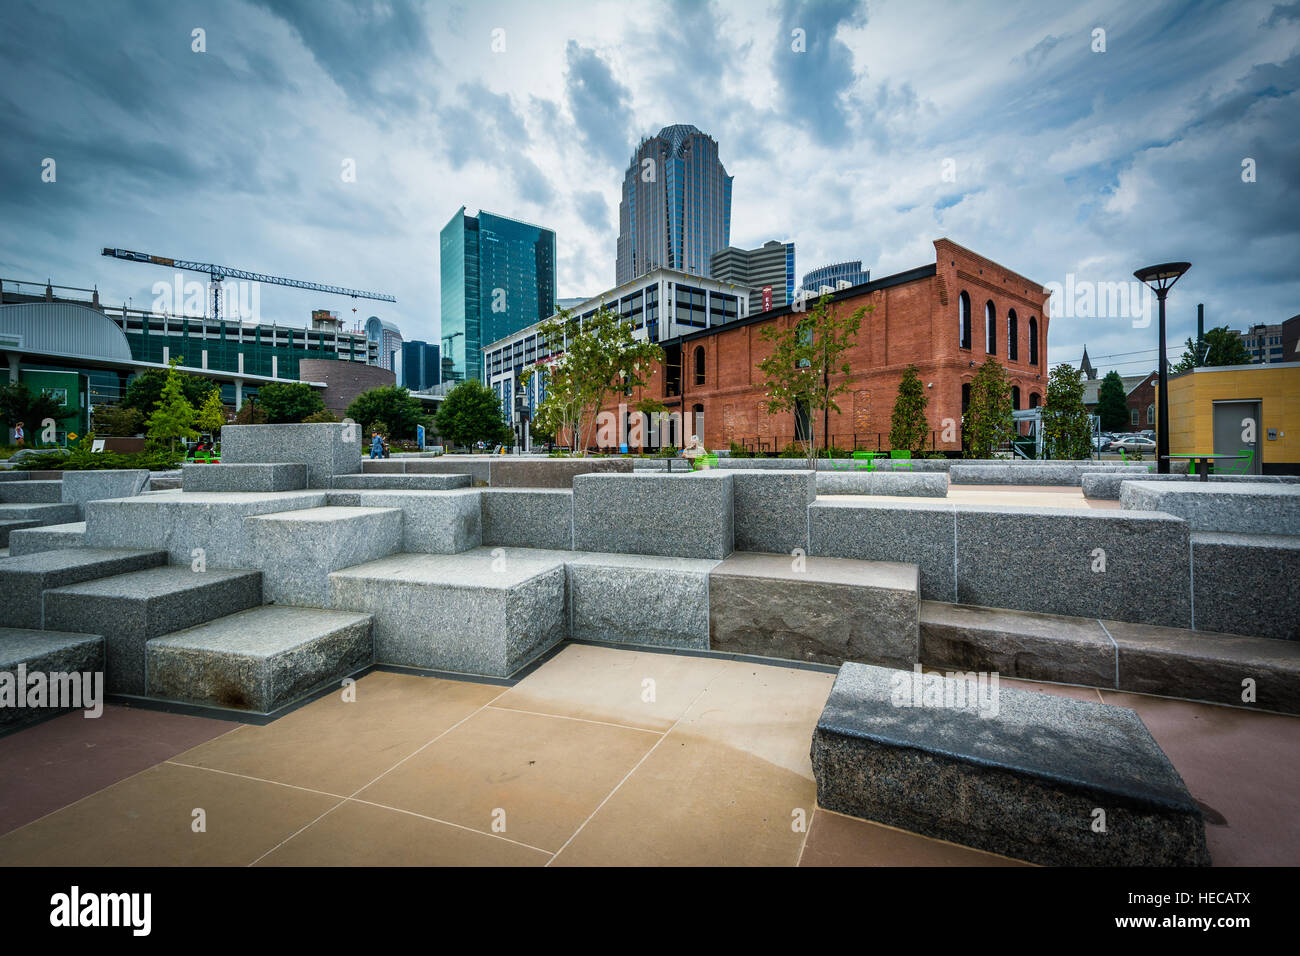 First Ward Park, in Uptown Charlotte, North Carolina. - Stock Image